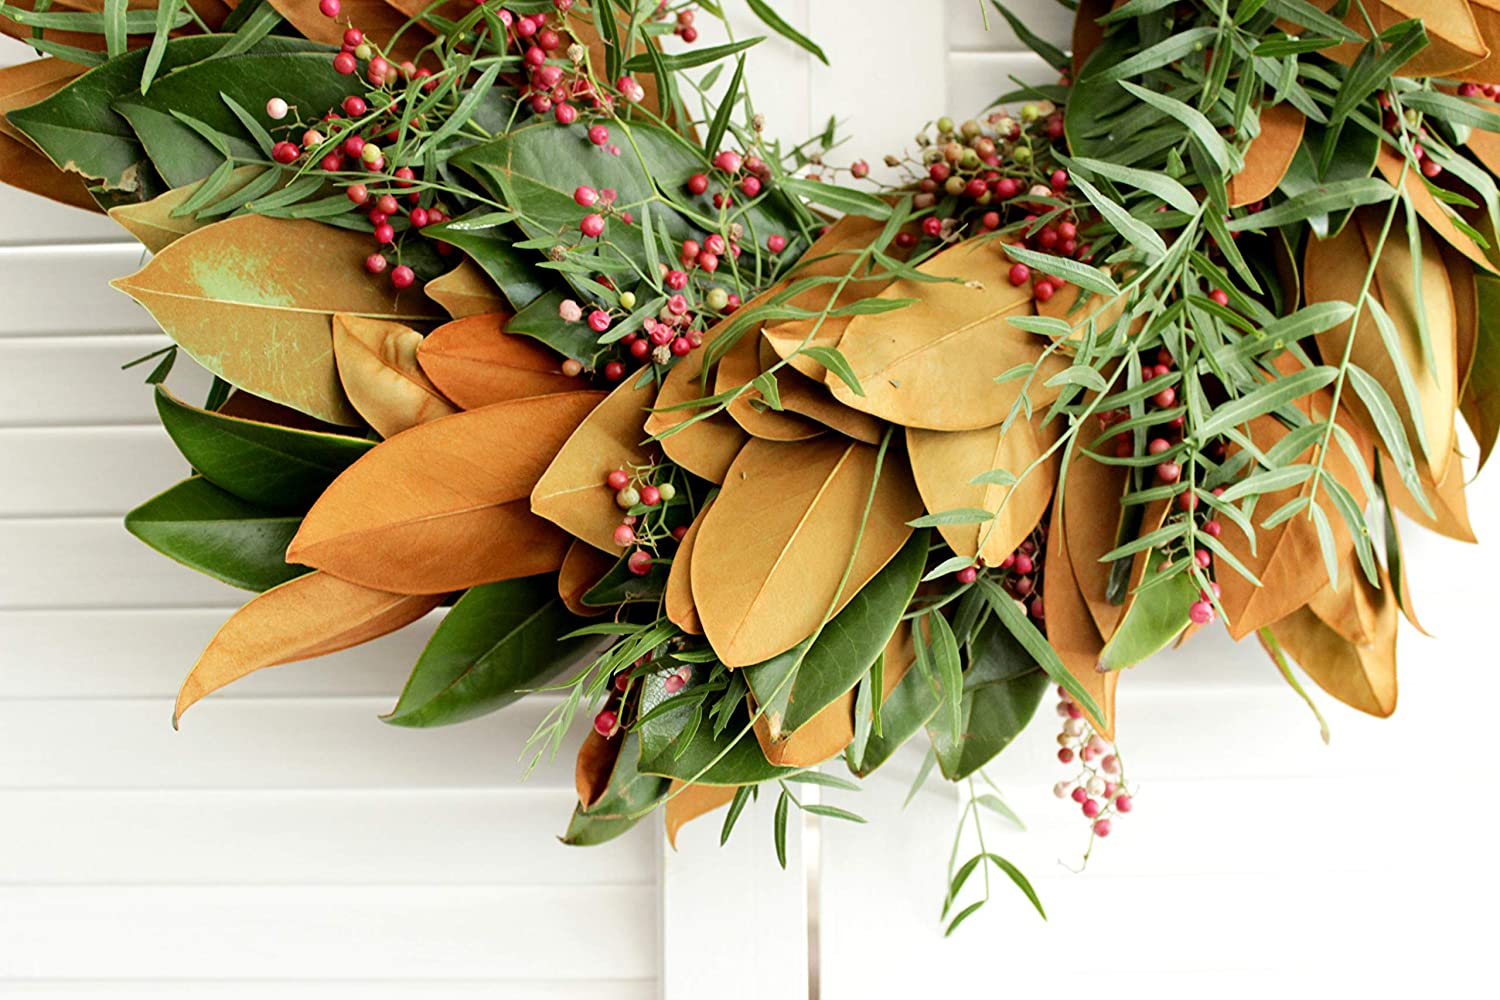 Wedding Baby Shower Magnolia Holiday Decor Fresh Handmade Wreath - Front Door Decor Bridal Shower Pepperberry Wreath - various sizes available